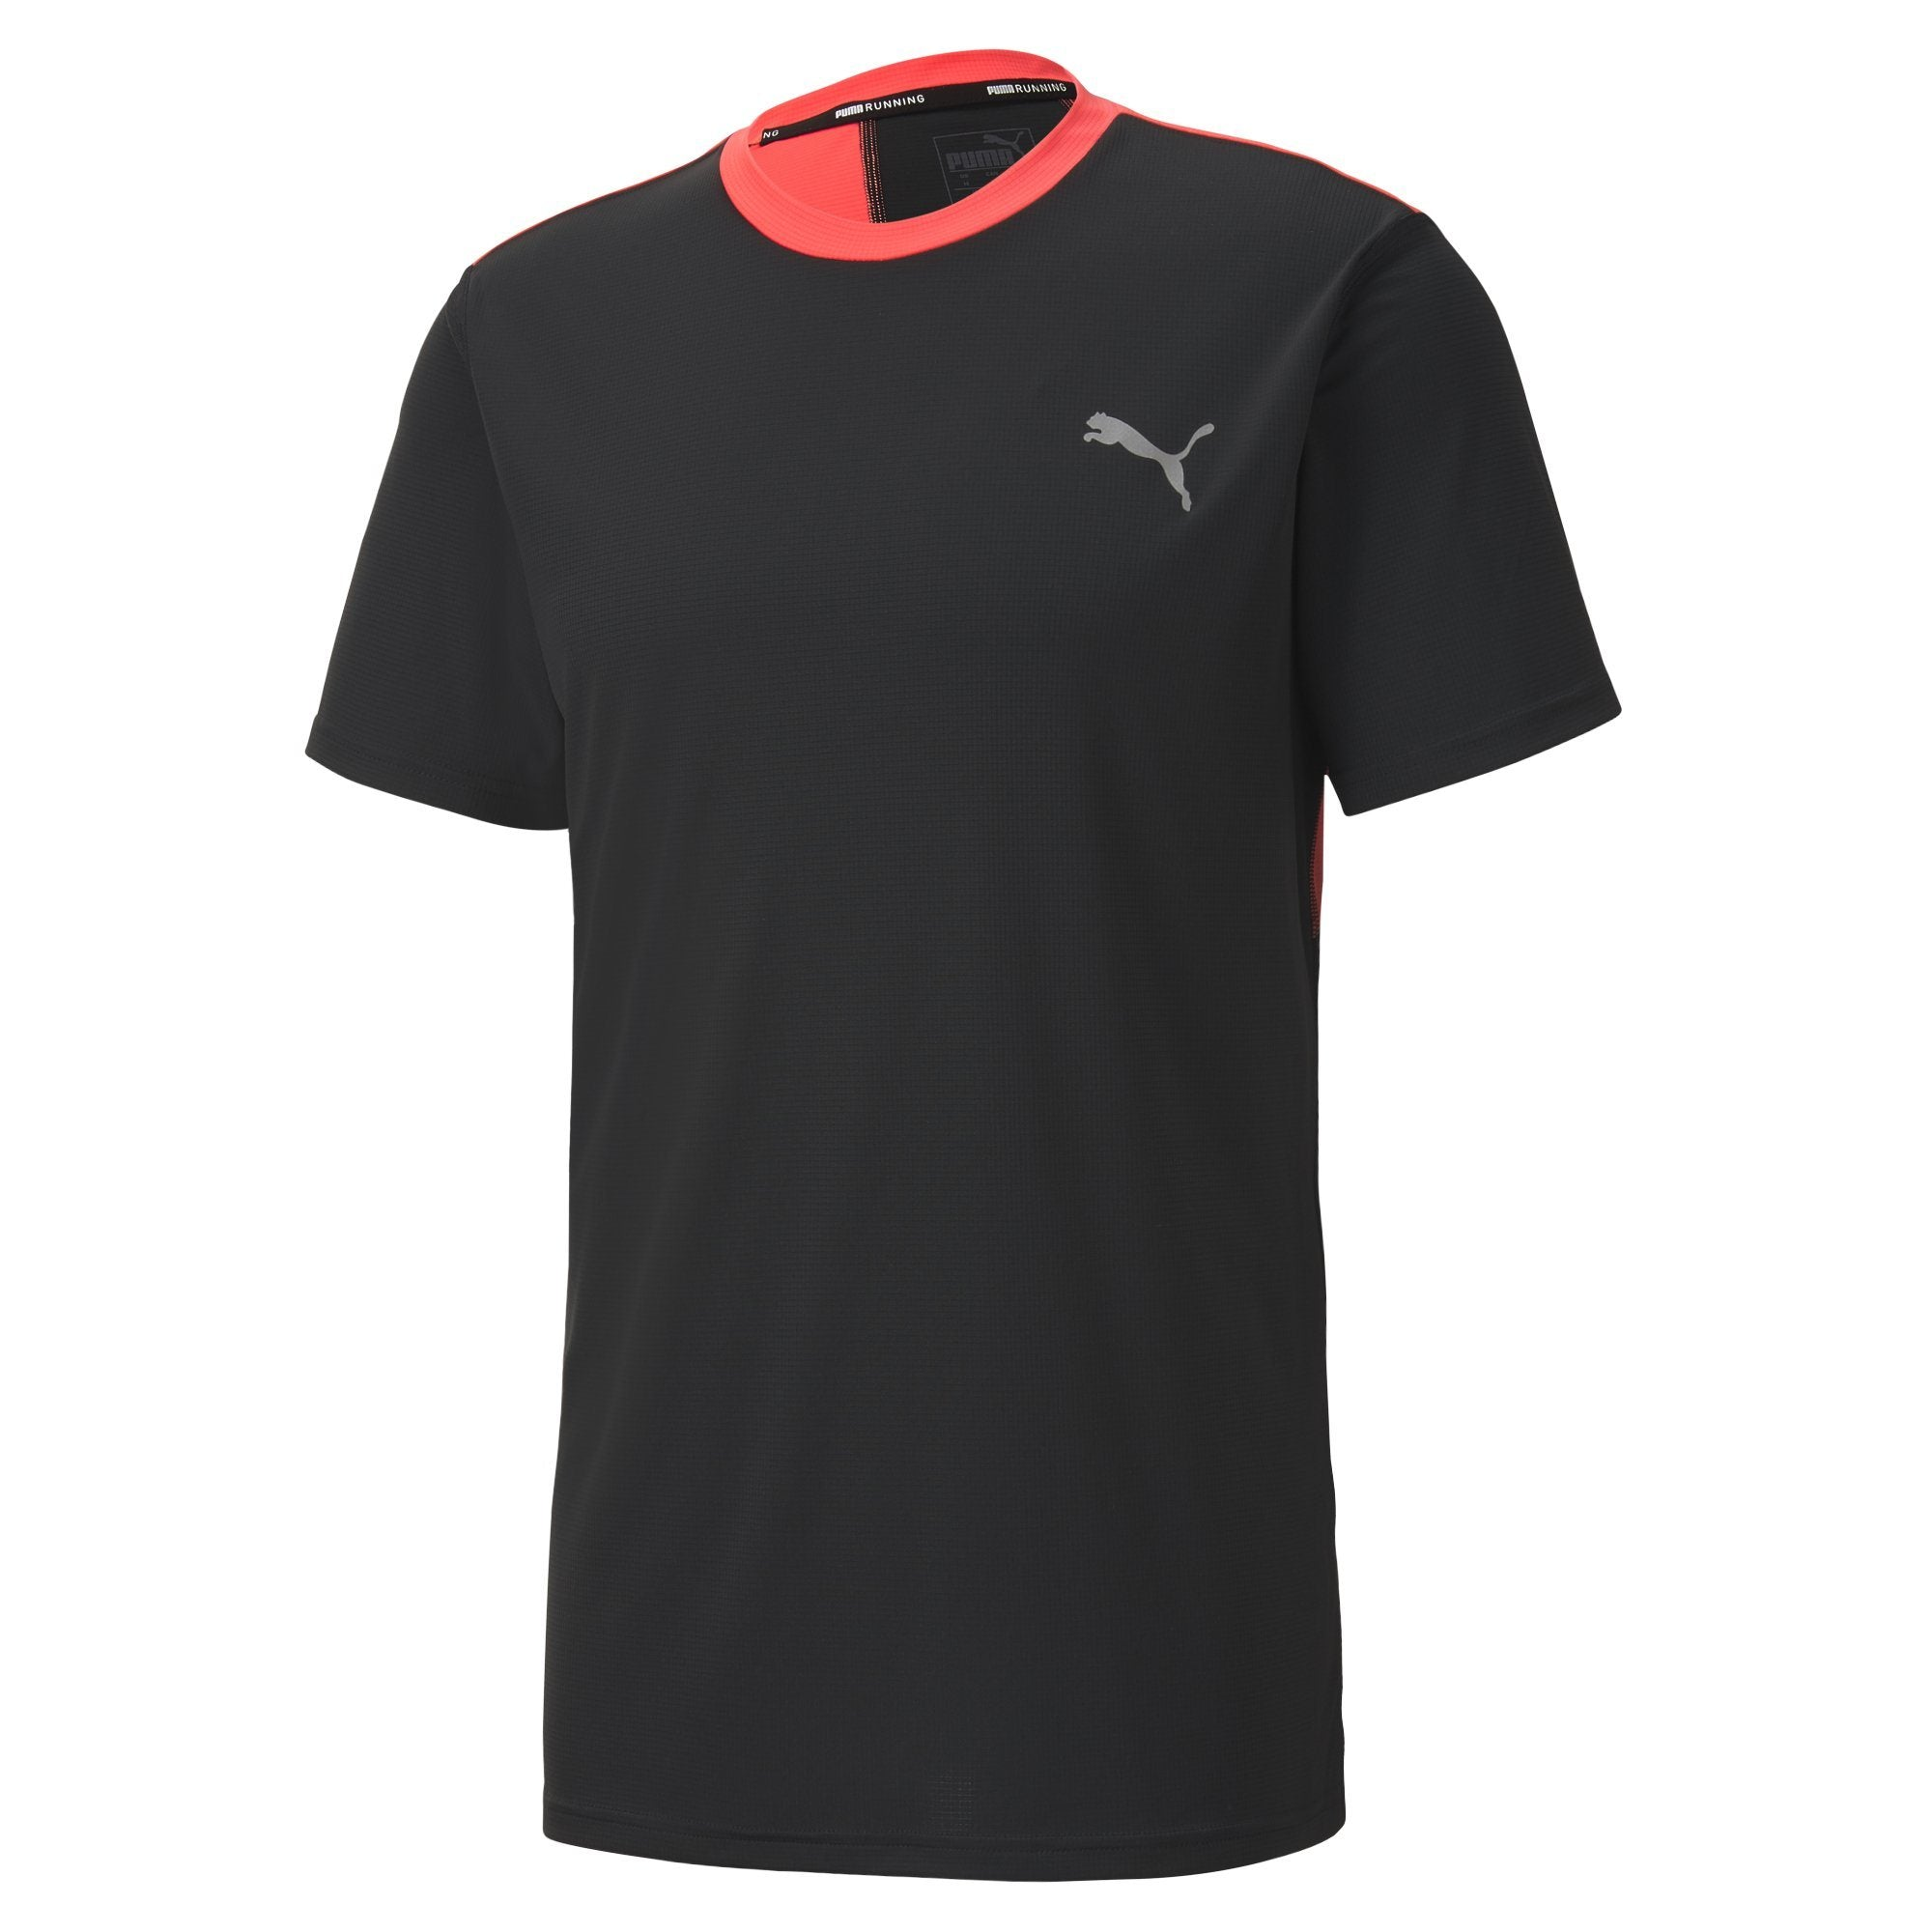 Puma Last Lap Block Tee Apparel - Men Puma